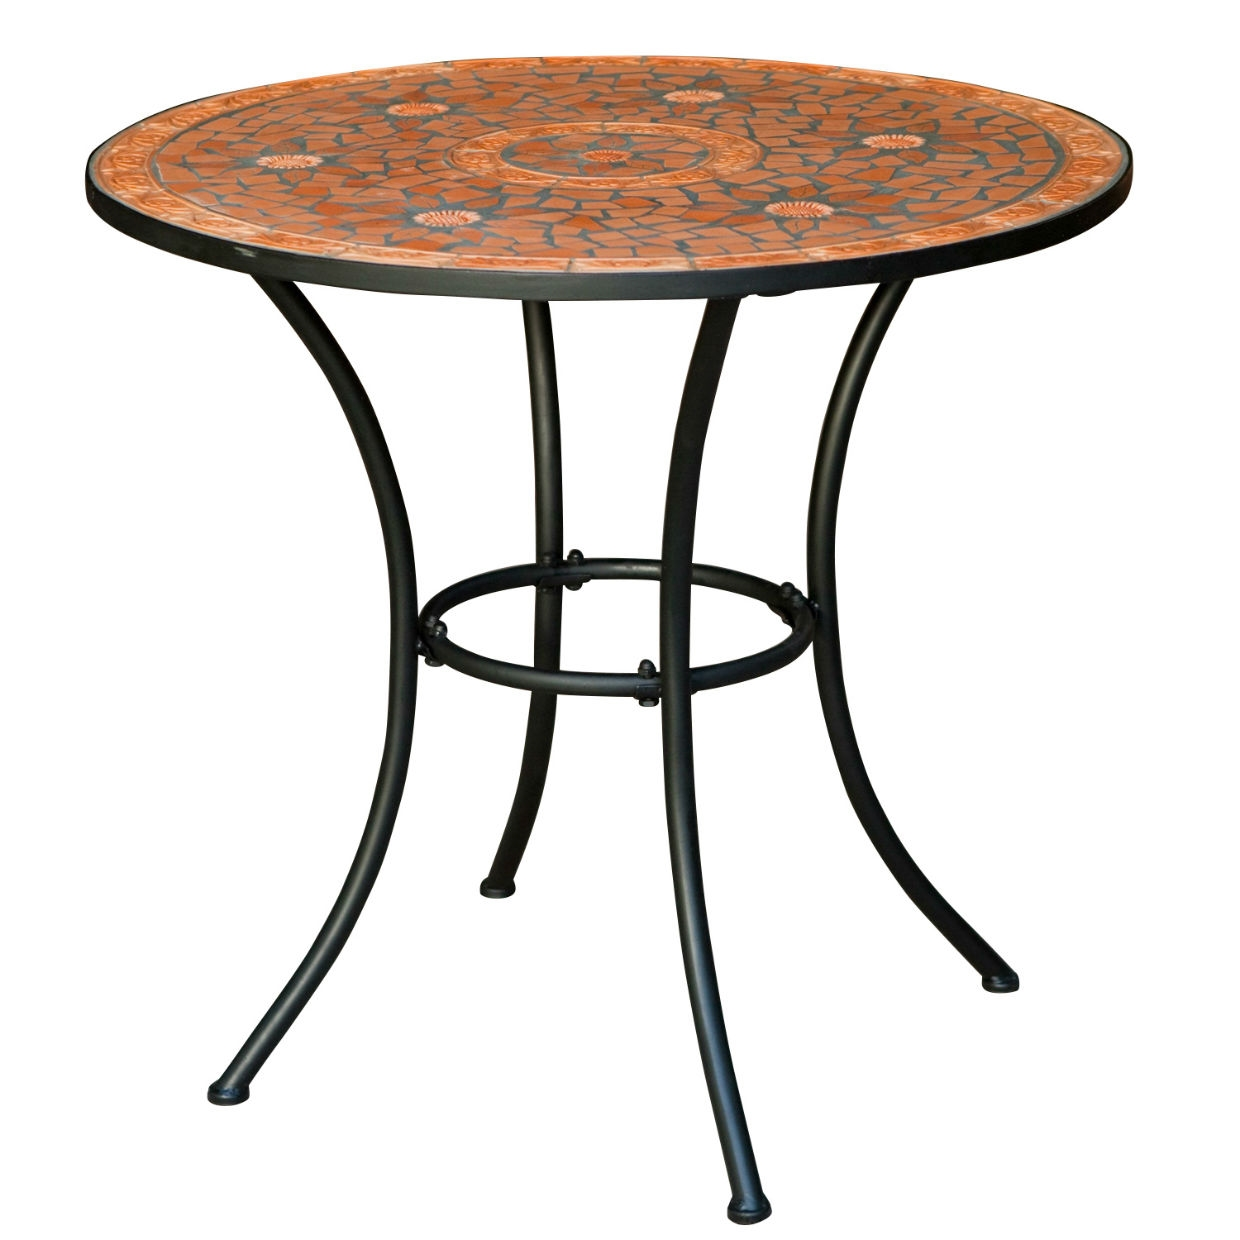 Outdoor round dining table - Round Outdoor Patio Bistro Table With Terracotta Mosaic Tiles And Black Metal Frame